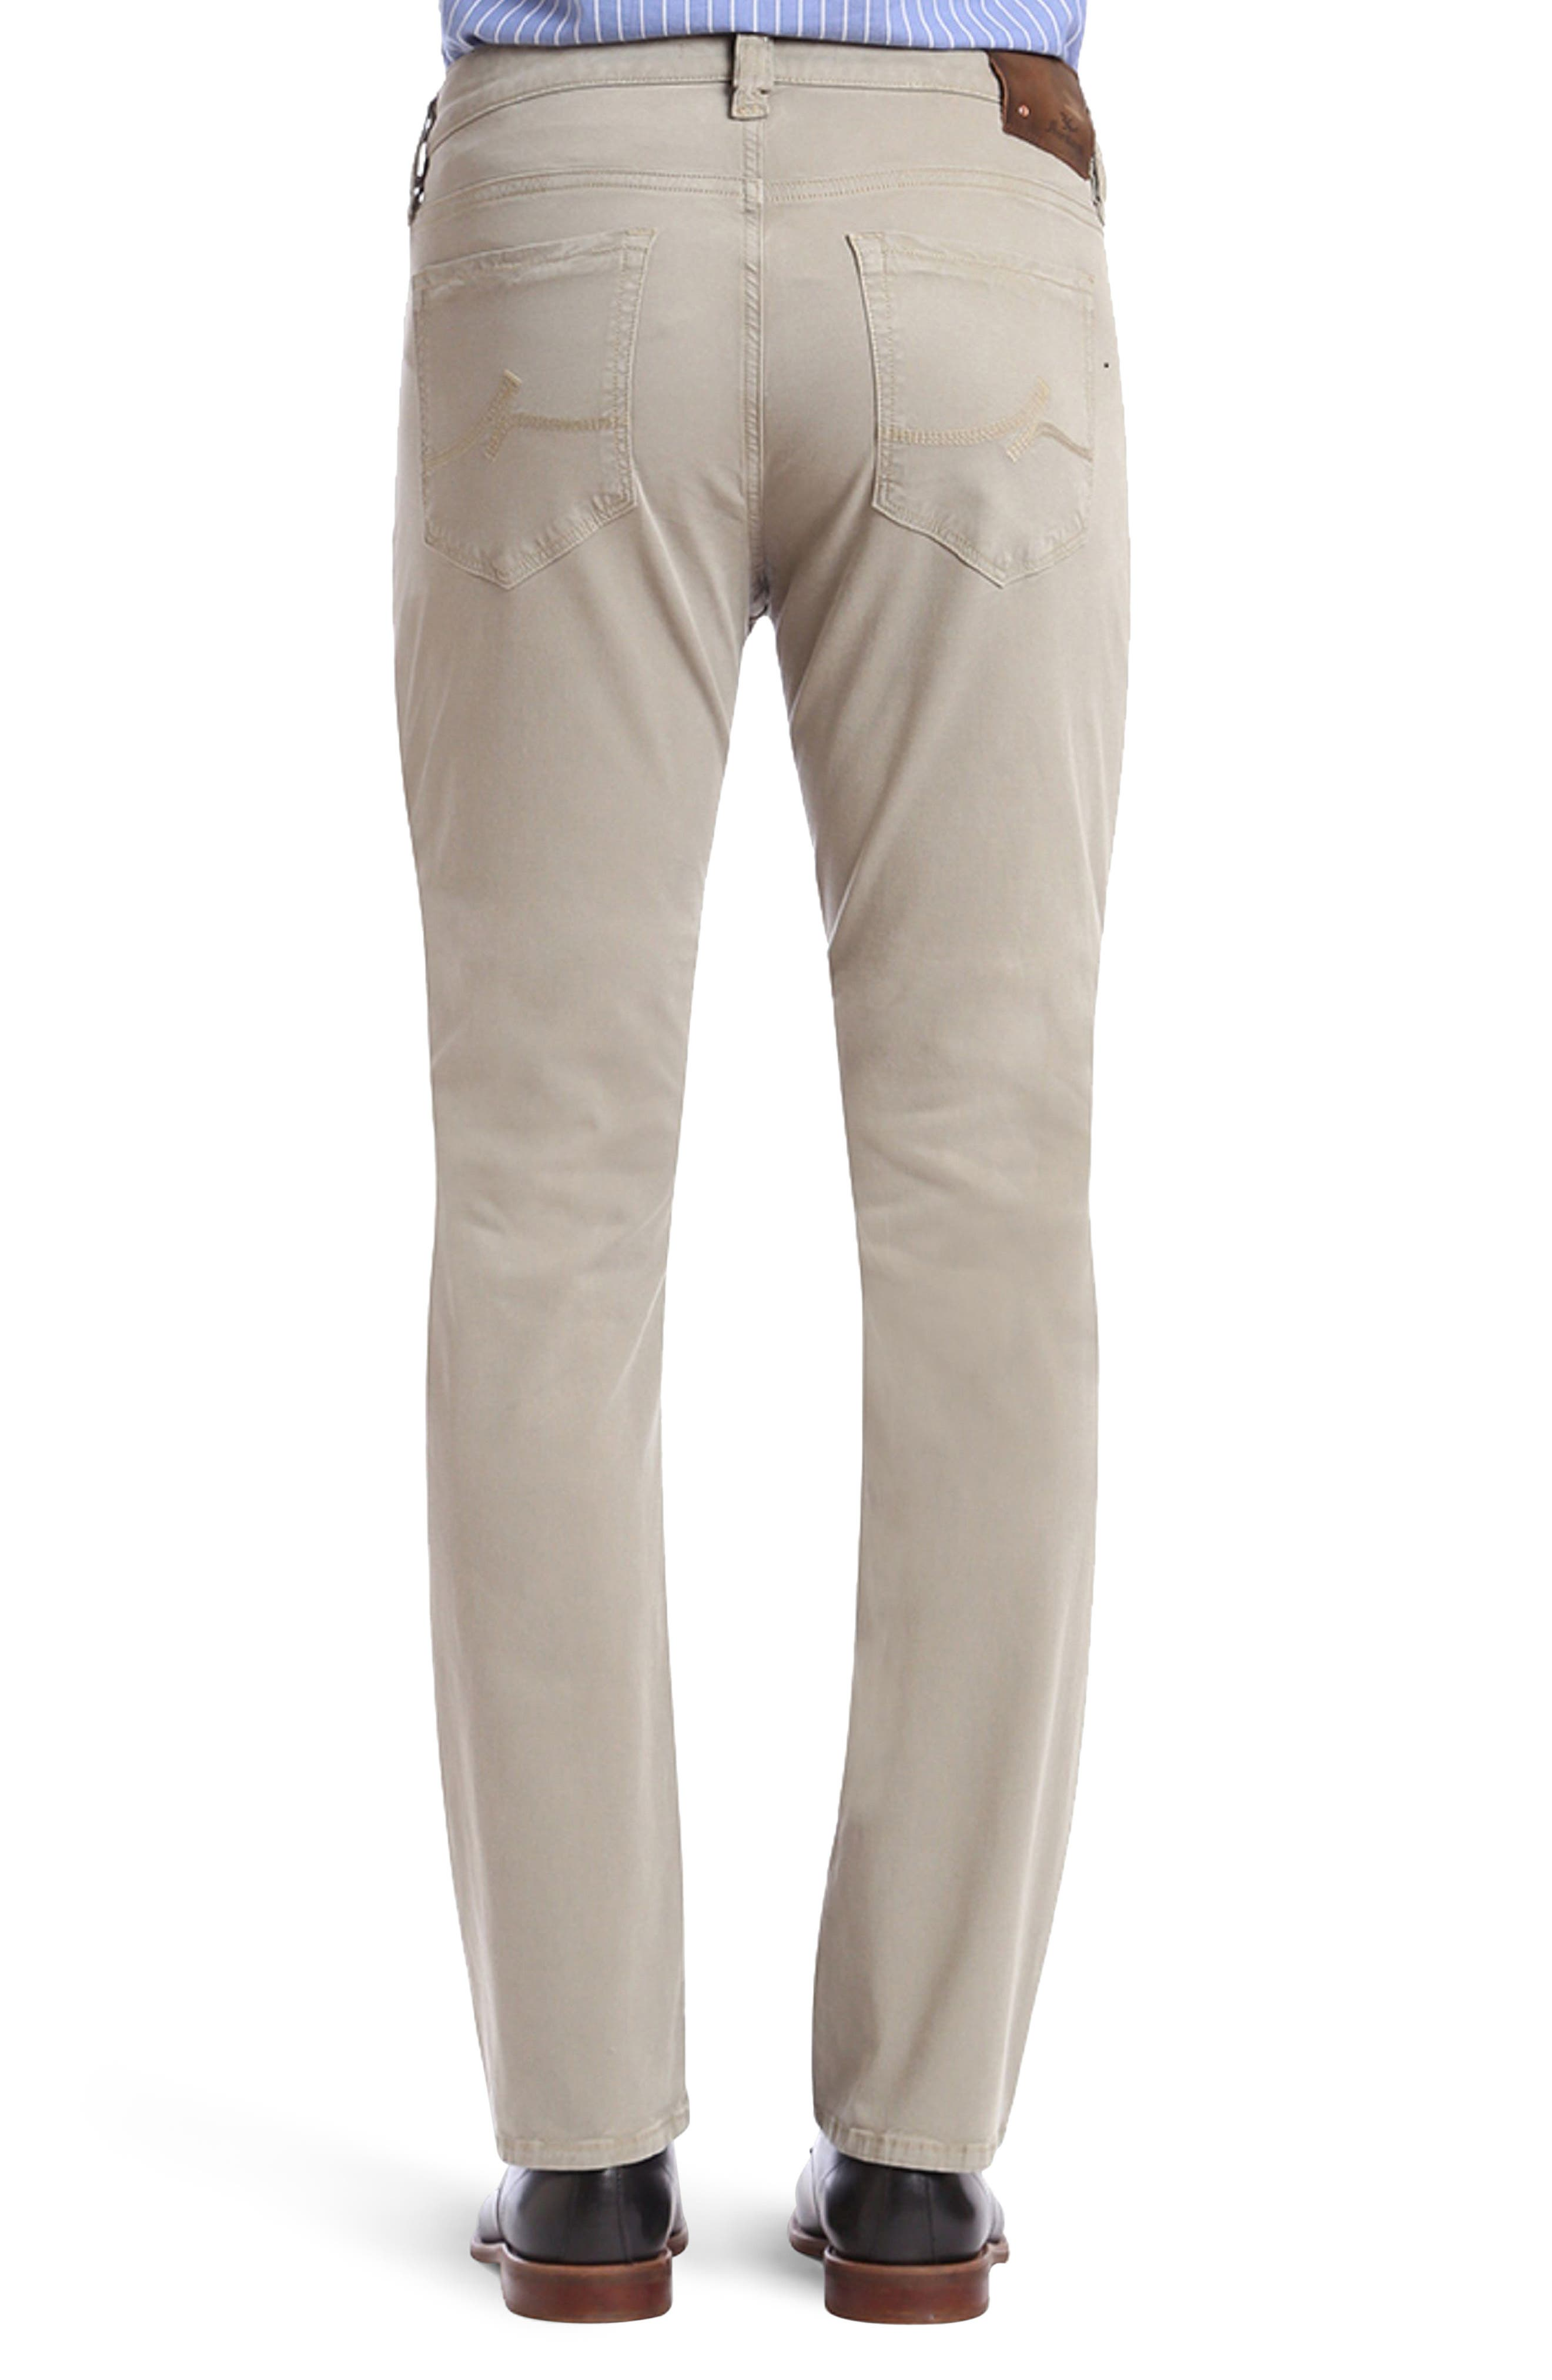 Courage Straight Fit Twill Pants,                             Alternate thumbnail 2, color,                             Khaki Fine Twill